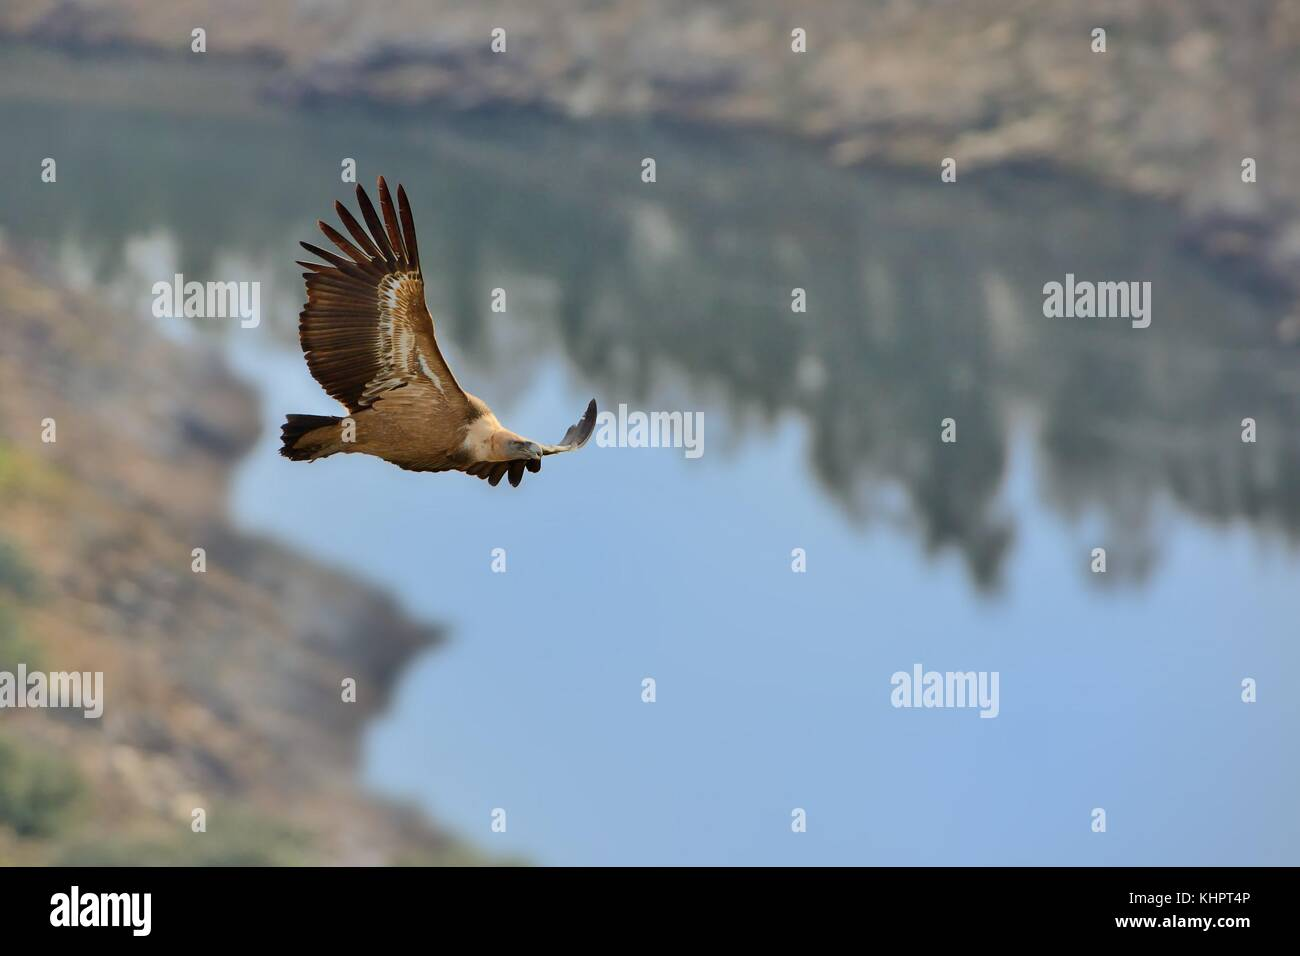 Eurasian Griffon (Gyps fulvus) flying above the lake between mountains. - Stock Image